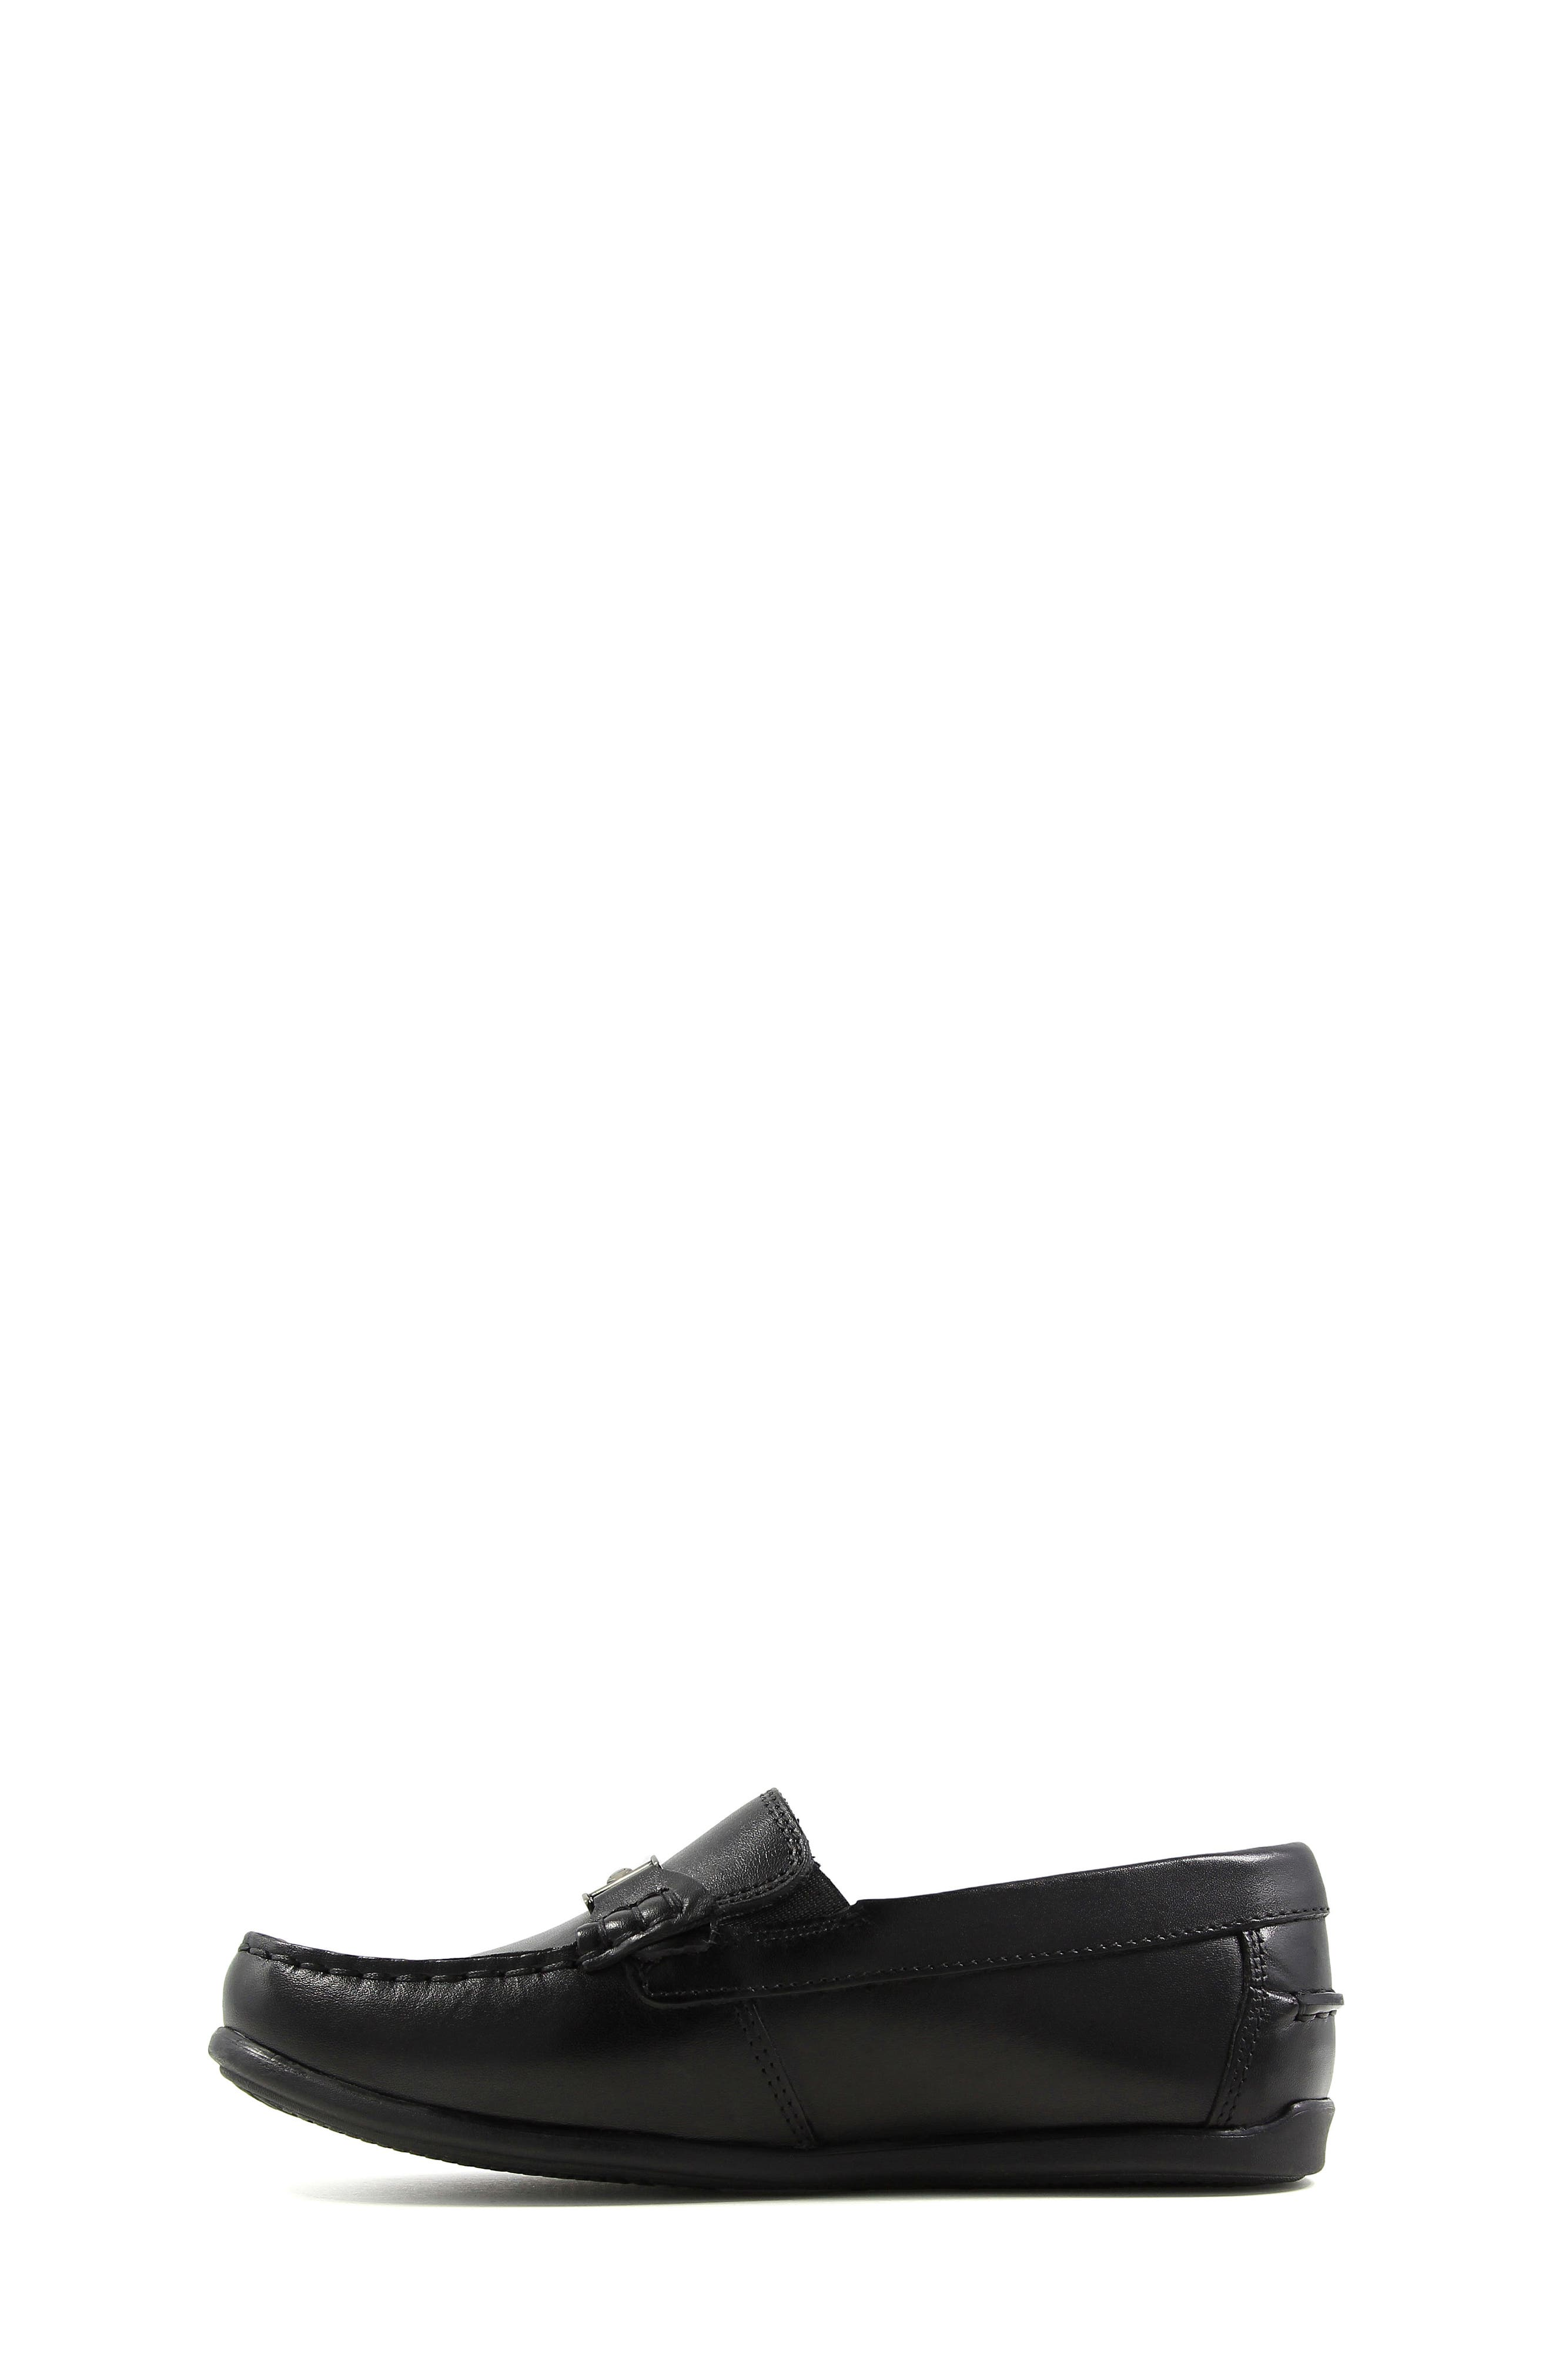 Alternate Image 3  - Florsheim Jasper Bit Jr Loafer (Toddler, Little Kid & Big Kid)